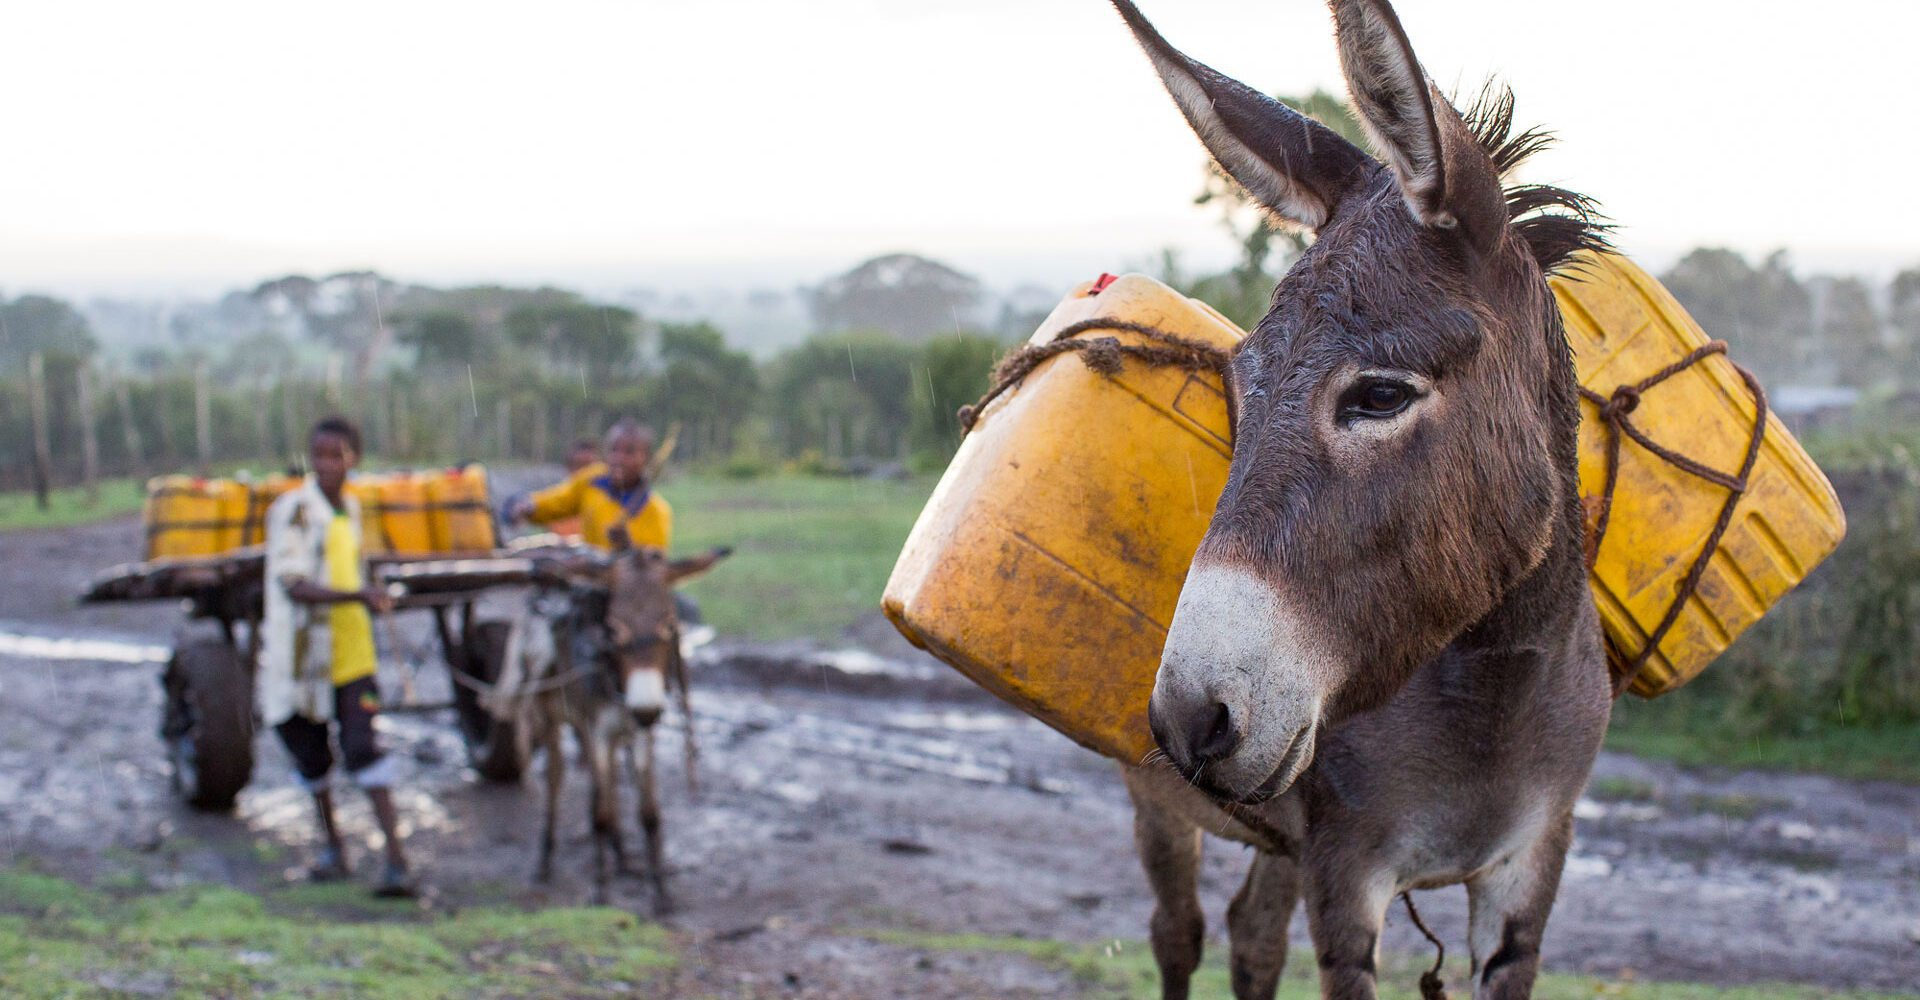 Donkey on the right hand side carrying 2 yellow water barrels.